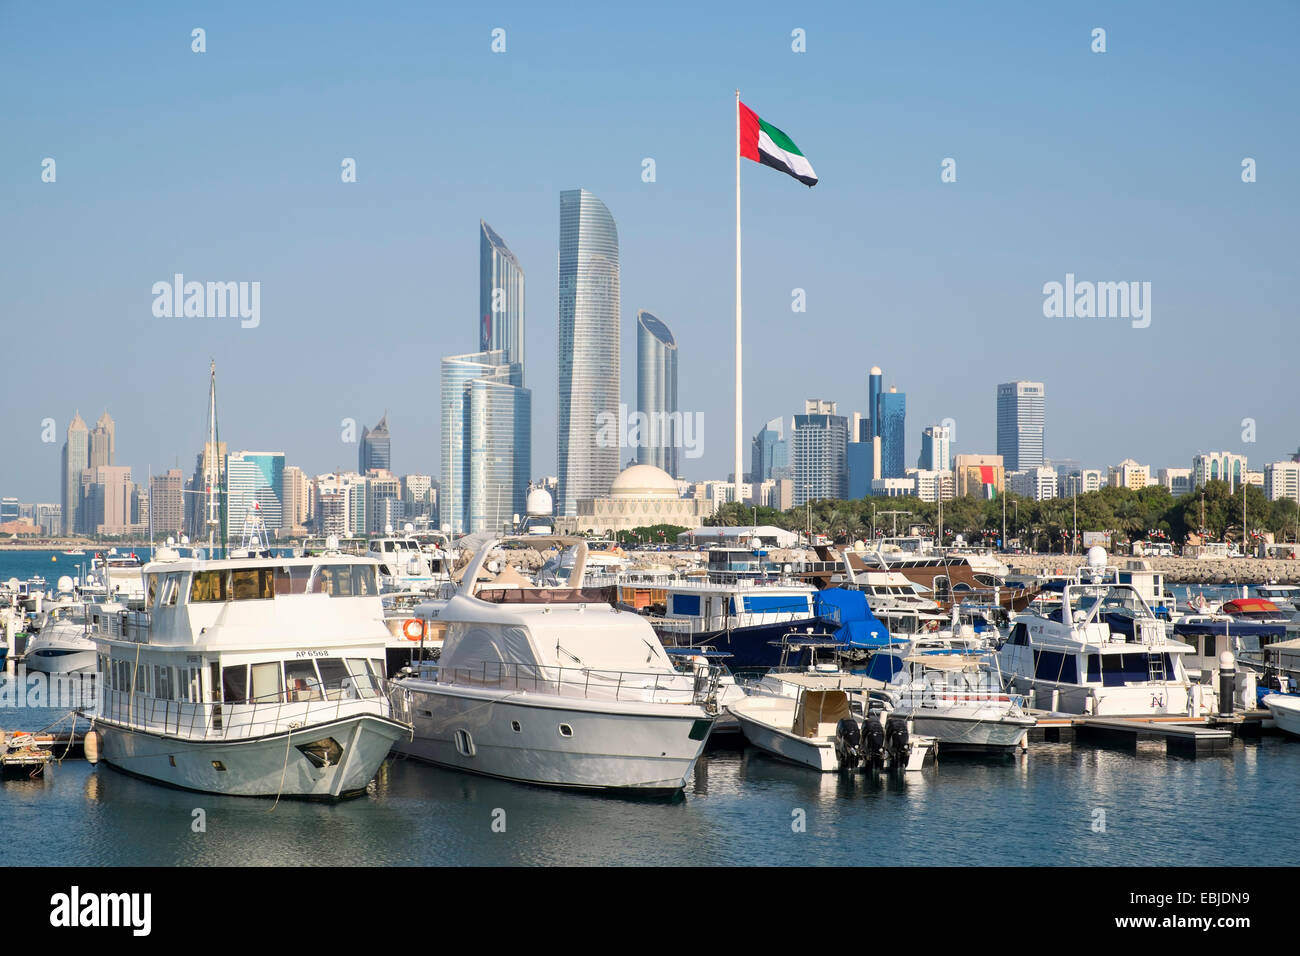 Skyline And Yacht Club Marina In Abu Dhabi United Arab Emirates Stock Photo Royalty Free Image